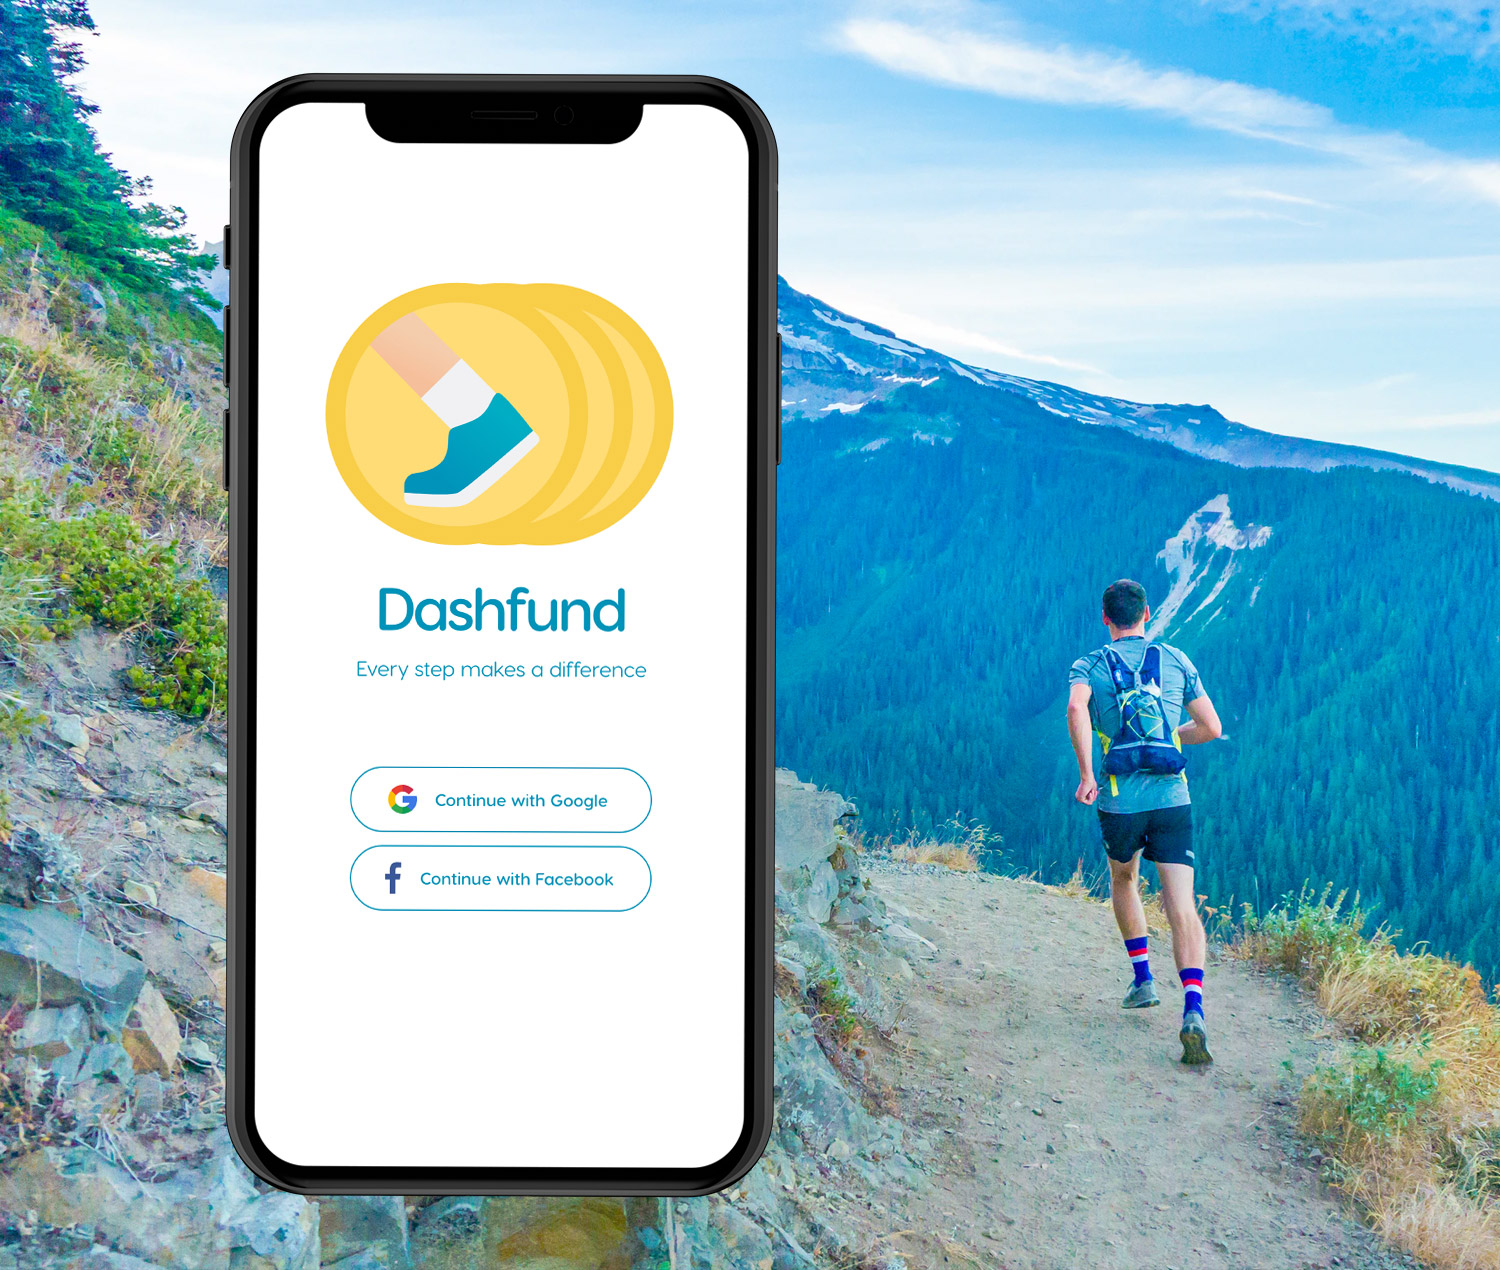 Dashfund